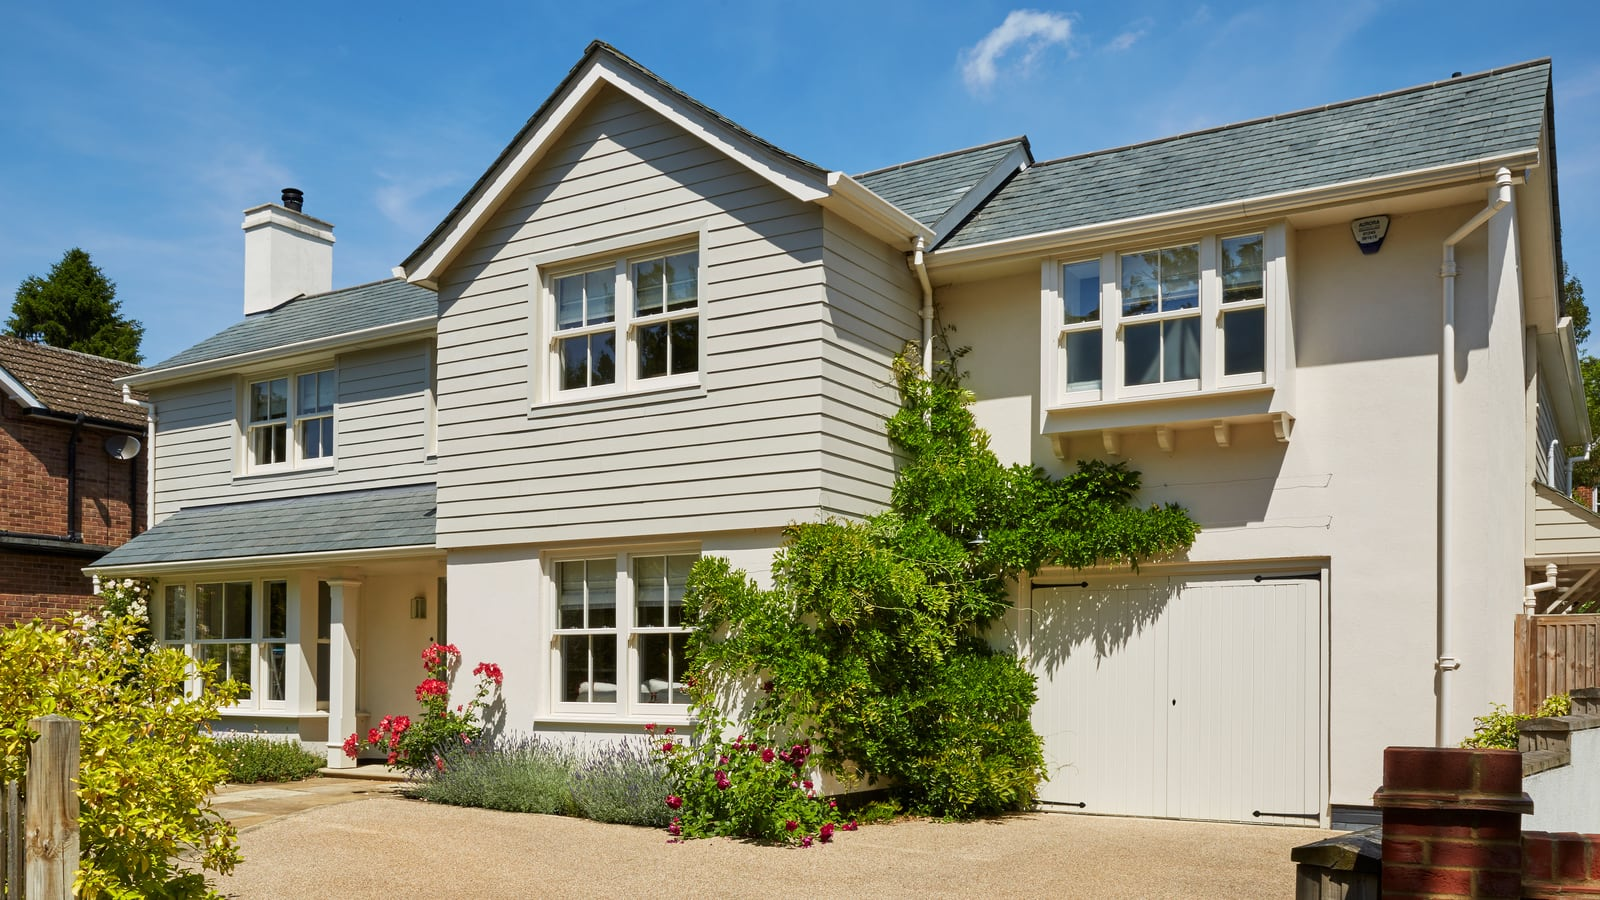 Property with standard spring balanced sash windows and part panelled (bolection) entrance door